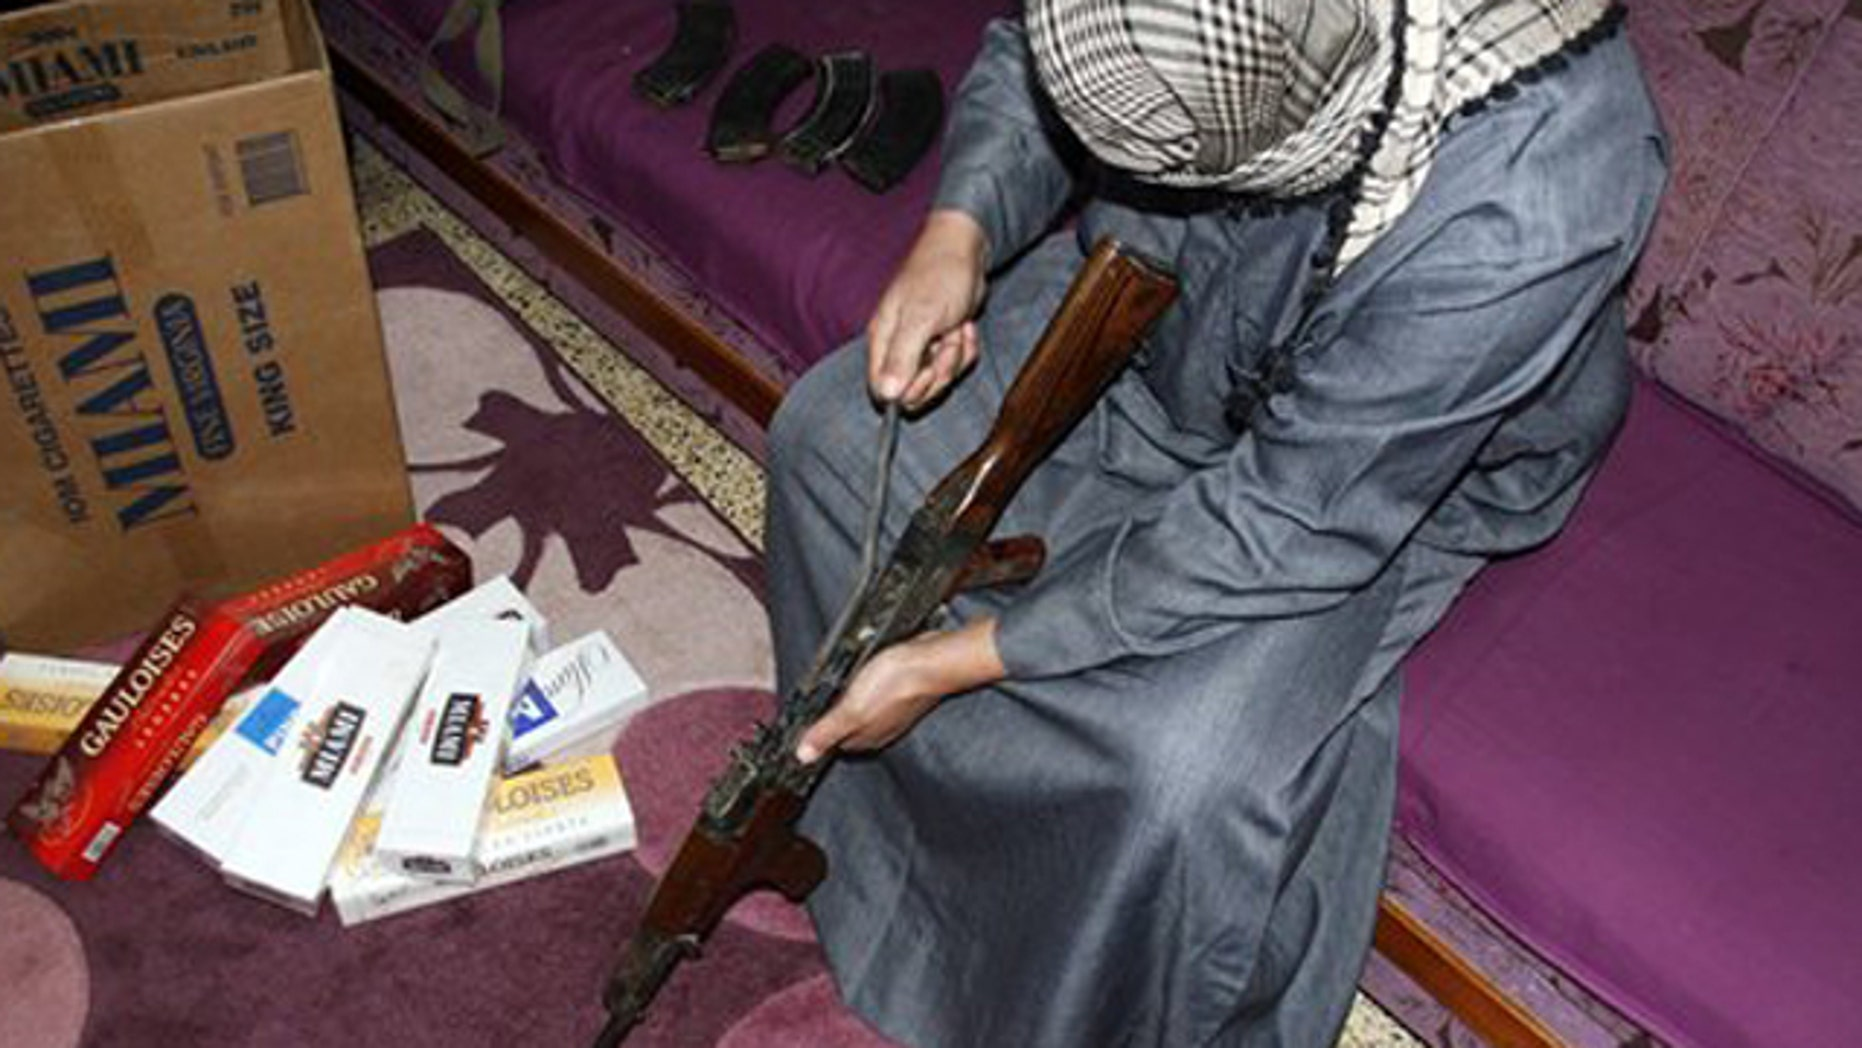 Feb. 14, 2012: Iraqi smuggler Younis al-Lehaibi, 46, dismantles an AK-47 machine-gun at his house.